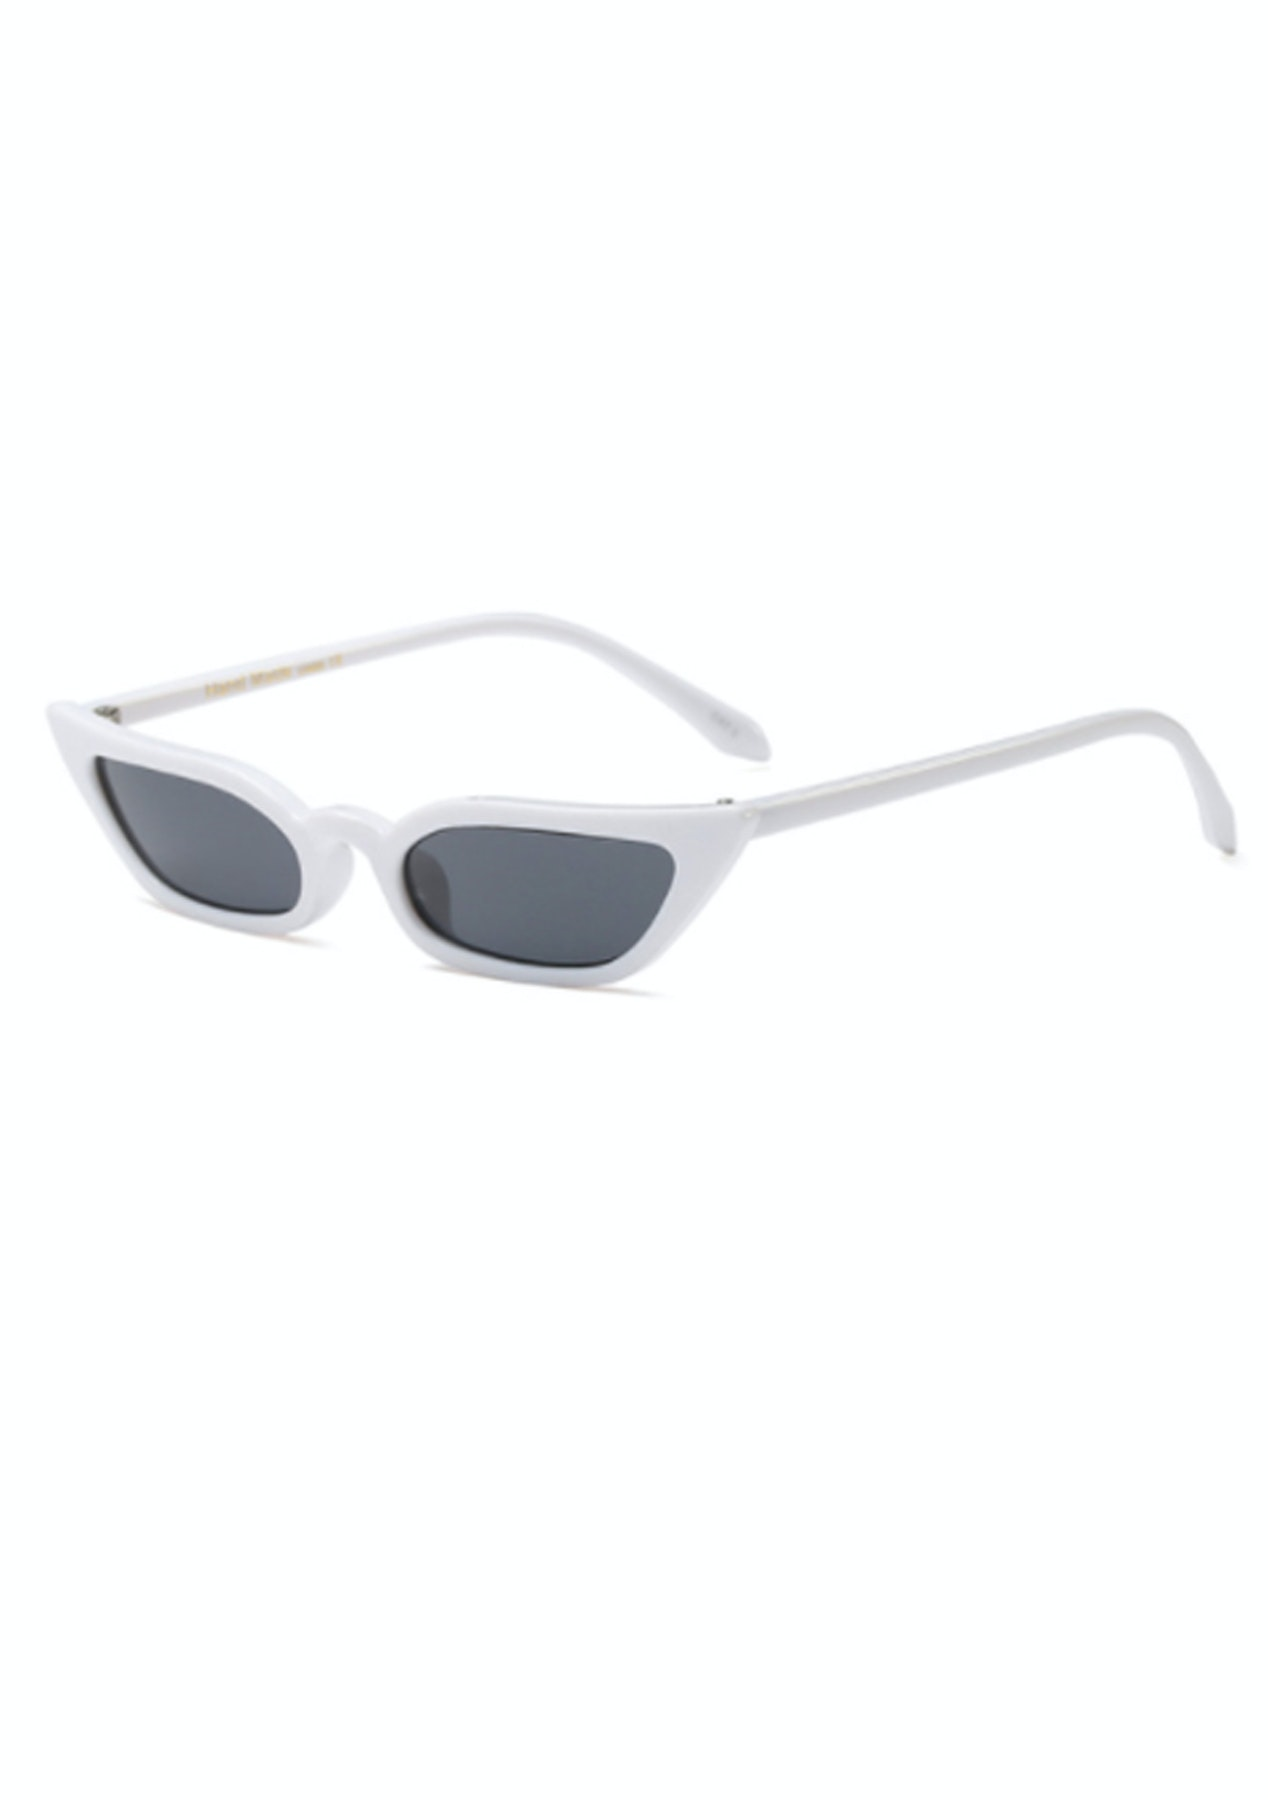 4cdaaad4a3d Slim Cat Eye Sunglasses - White - Eyewear Clear Out - Onceit